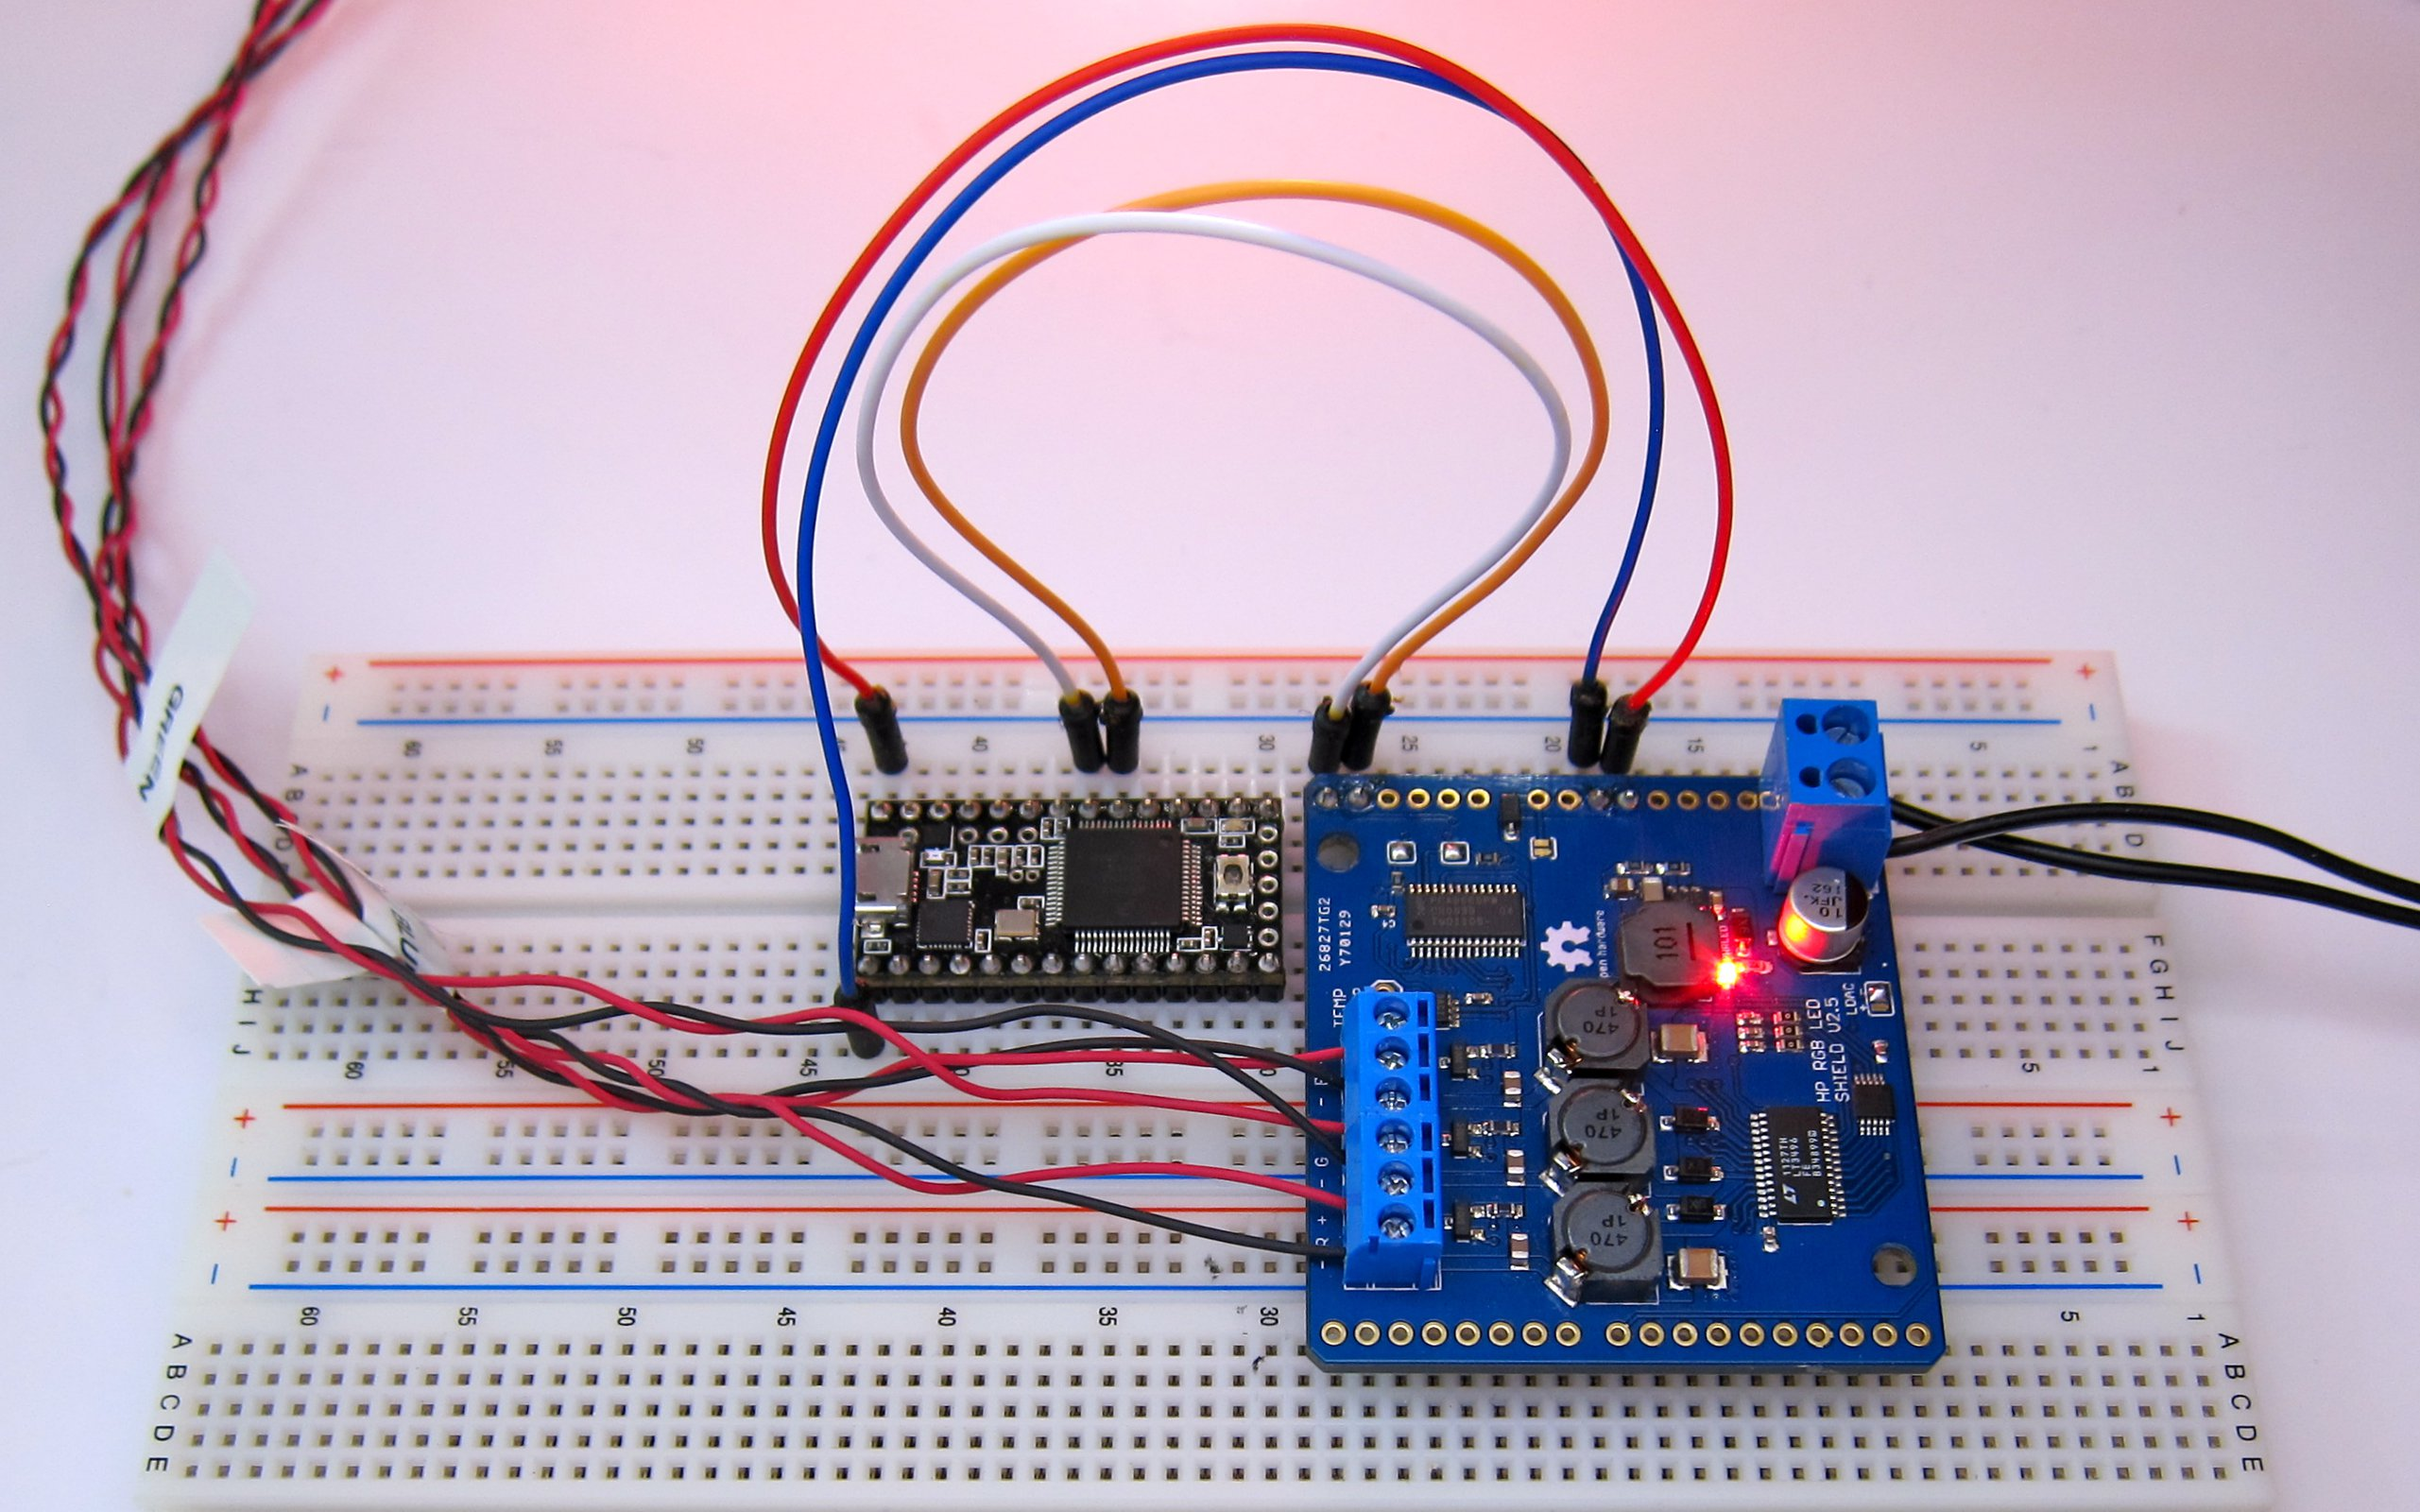 High Power Rgb Led Shield I2c 12bit Ch Dimming From Driver Chip Application Circuit With Interface 4